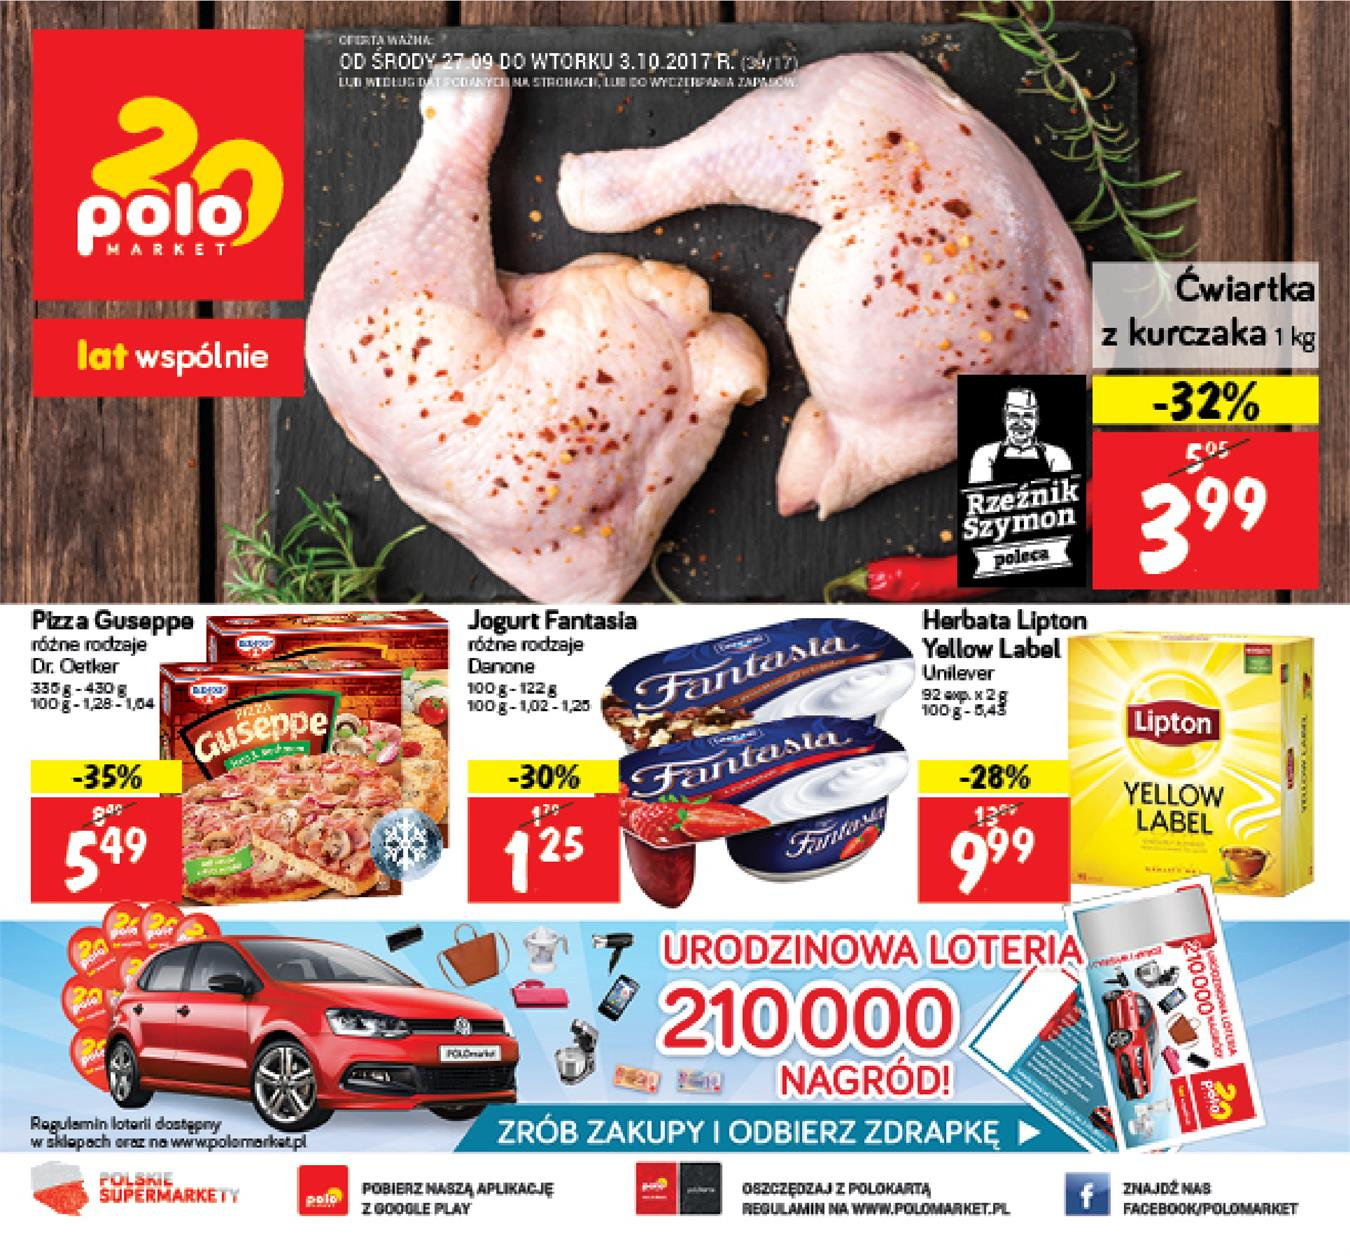 Gazetka Polomarket Sp. z o.o. nr 0 od 2017-09-27 do 2017-10-03